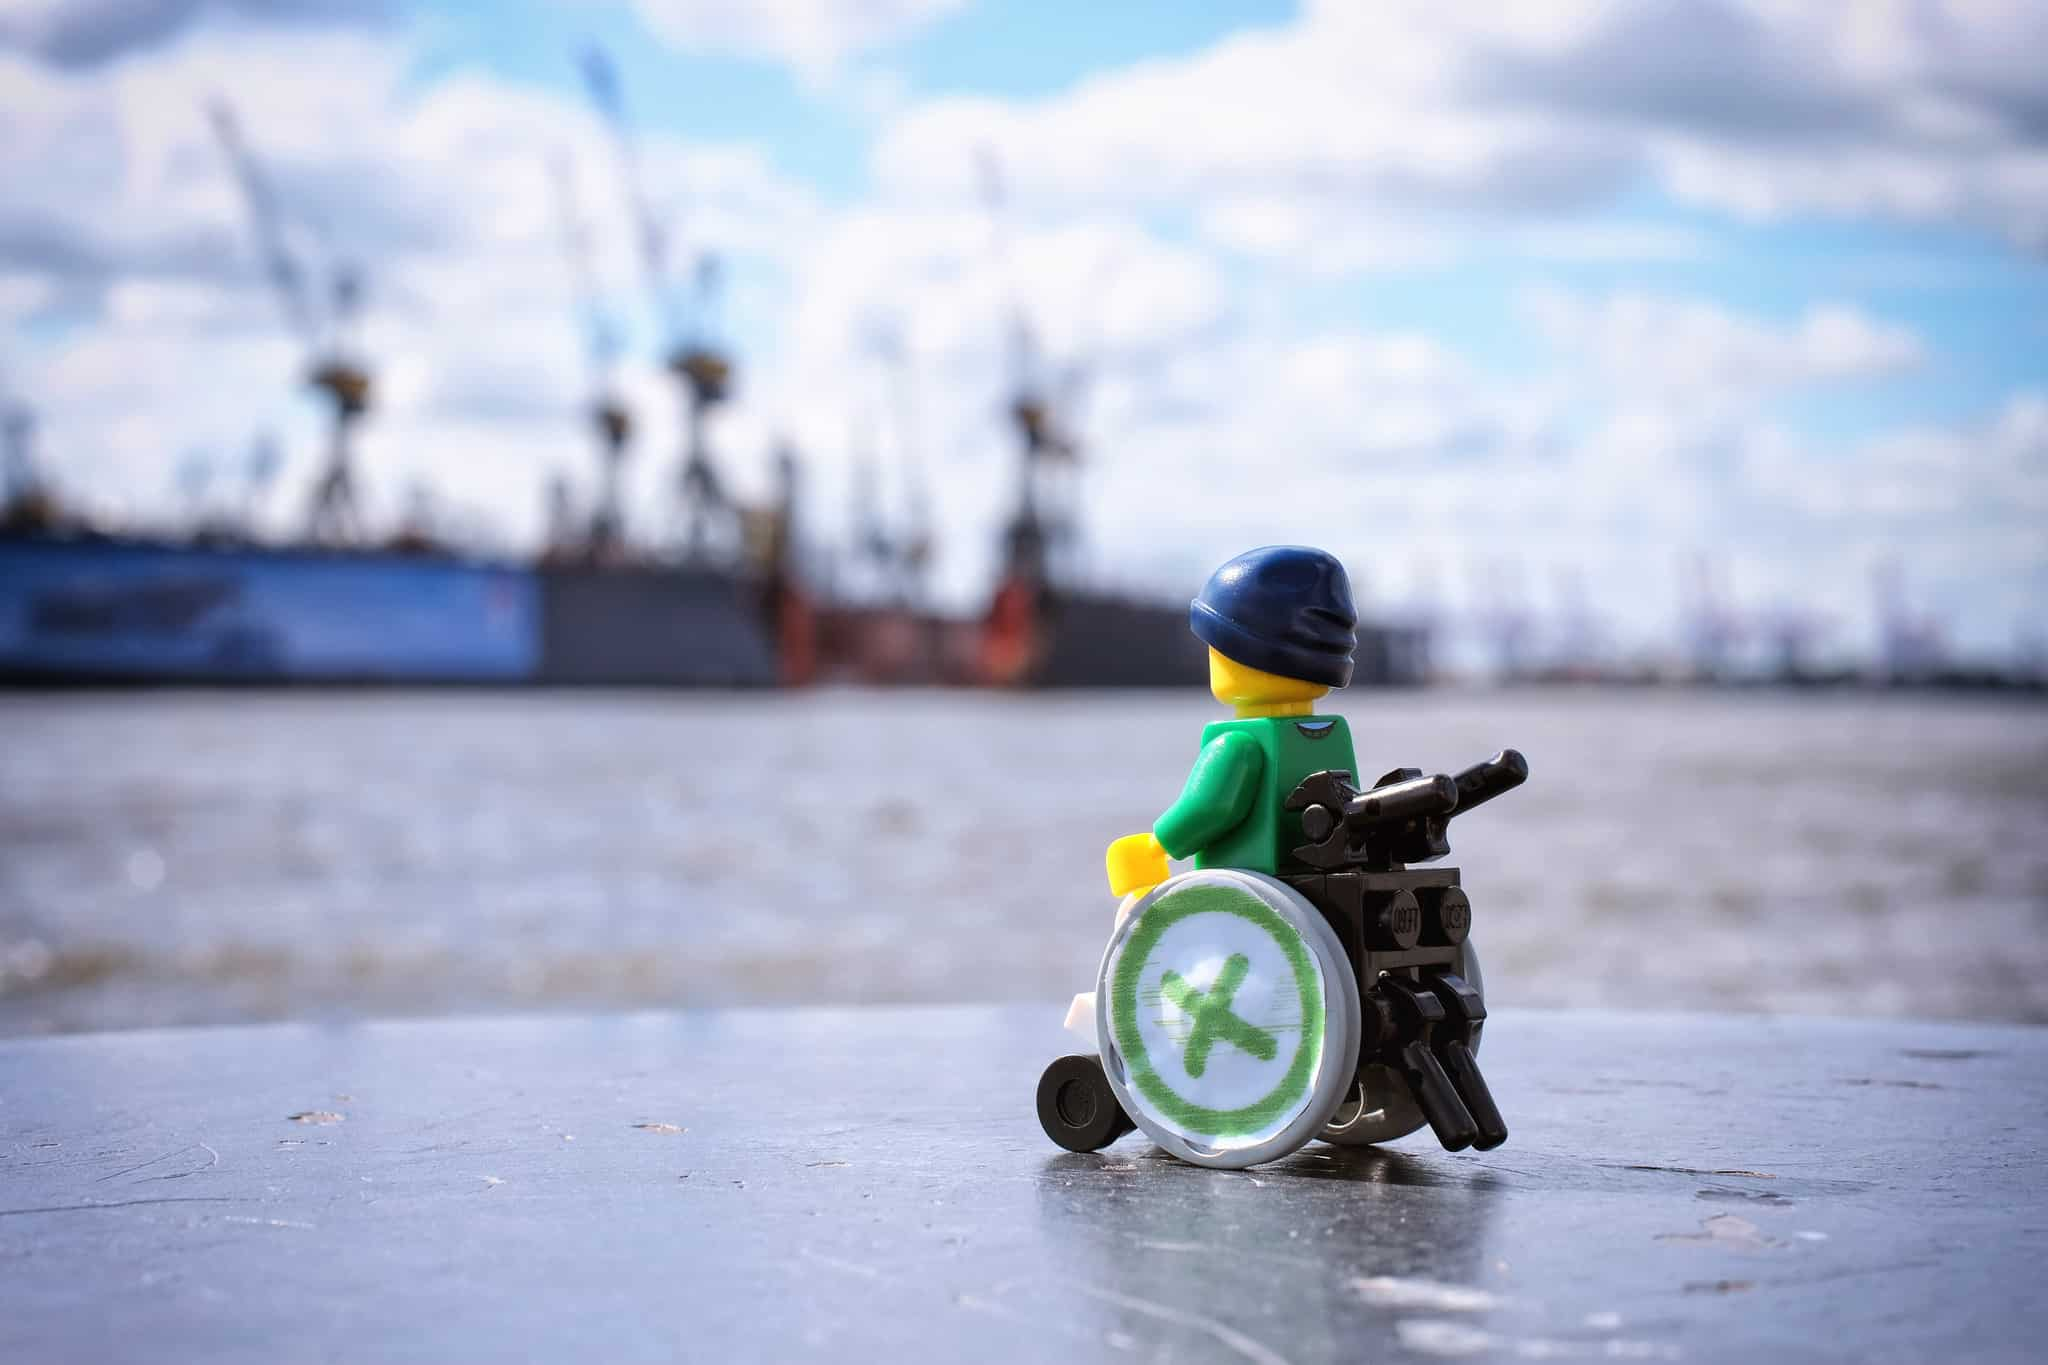 Lego figure of man in wheelchair looking out at ships by the dock